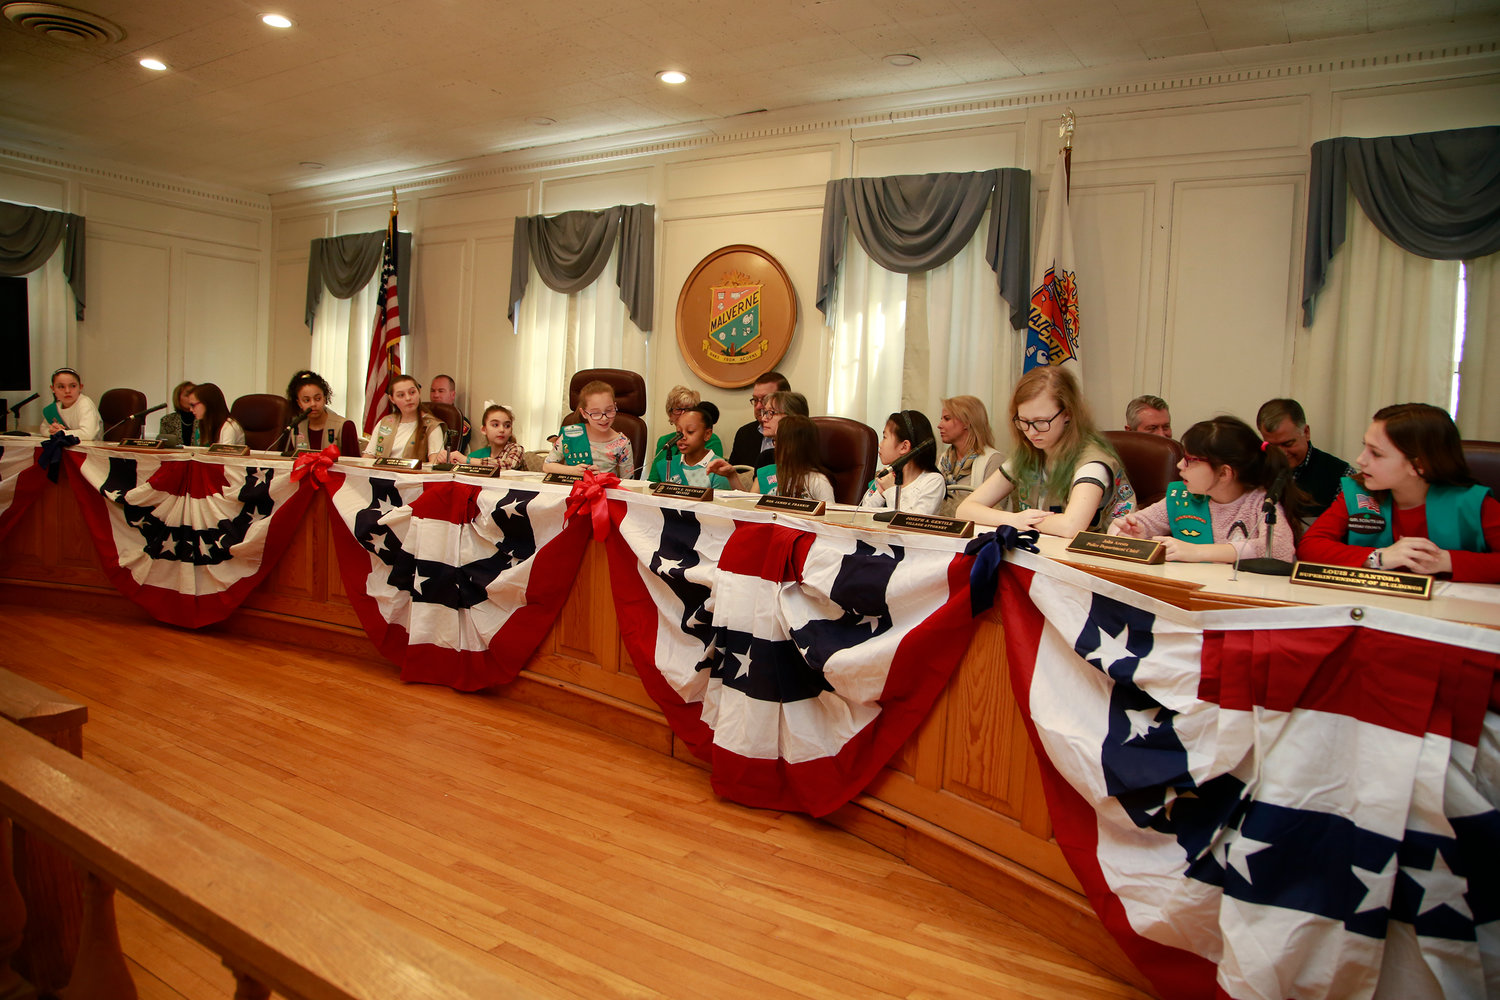 Local Girl Scouts filled in for members of the village board during Girls Scouts Government Day last Saturday.